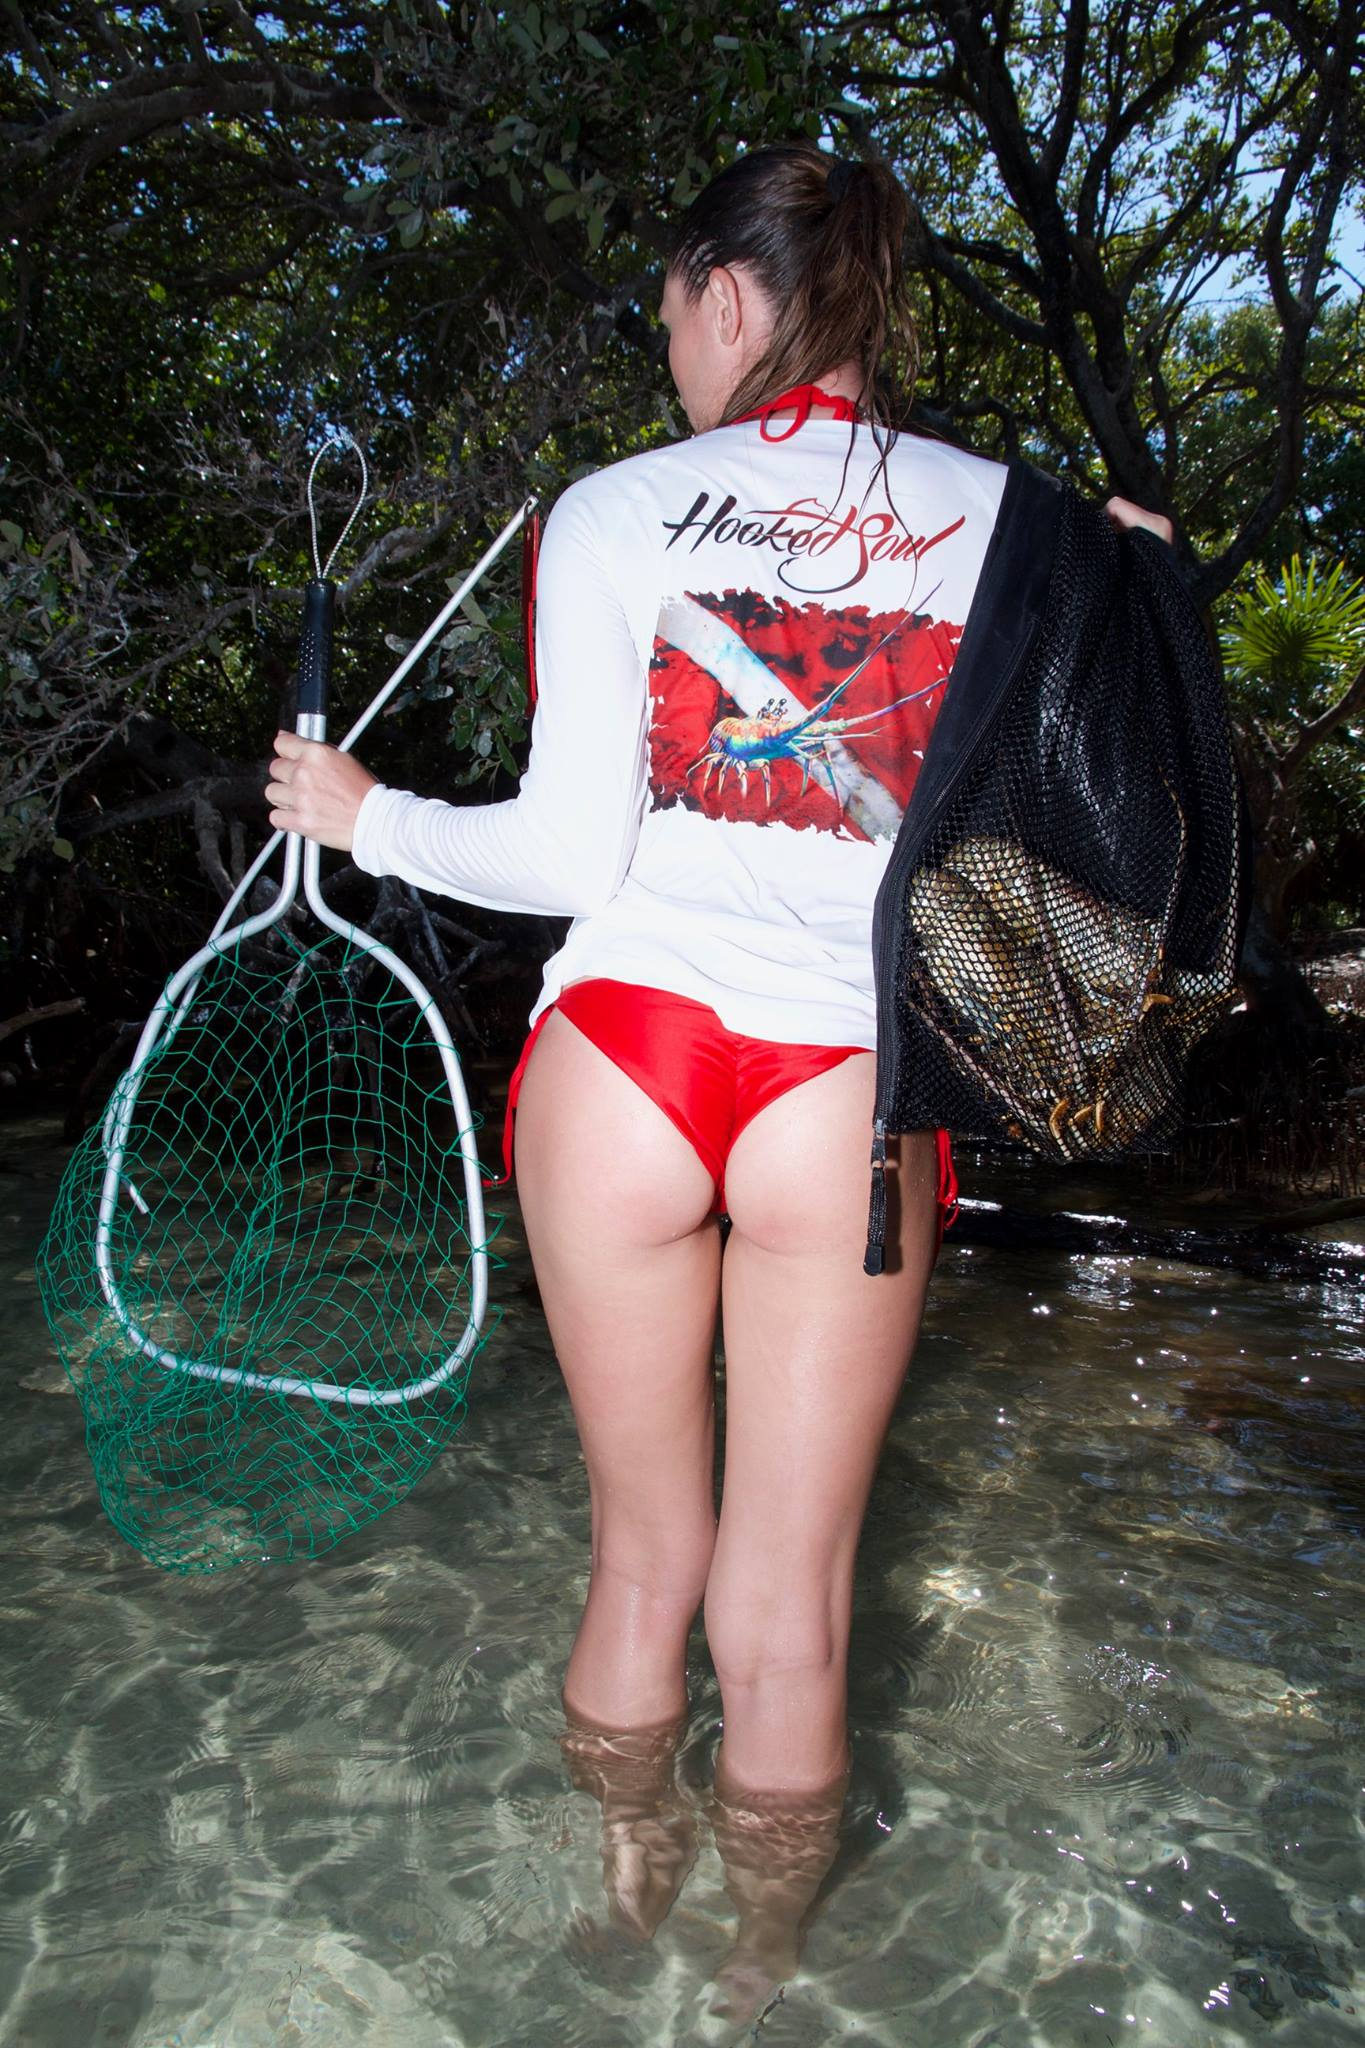 lobster diver down hot girl thong bikini